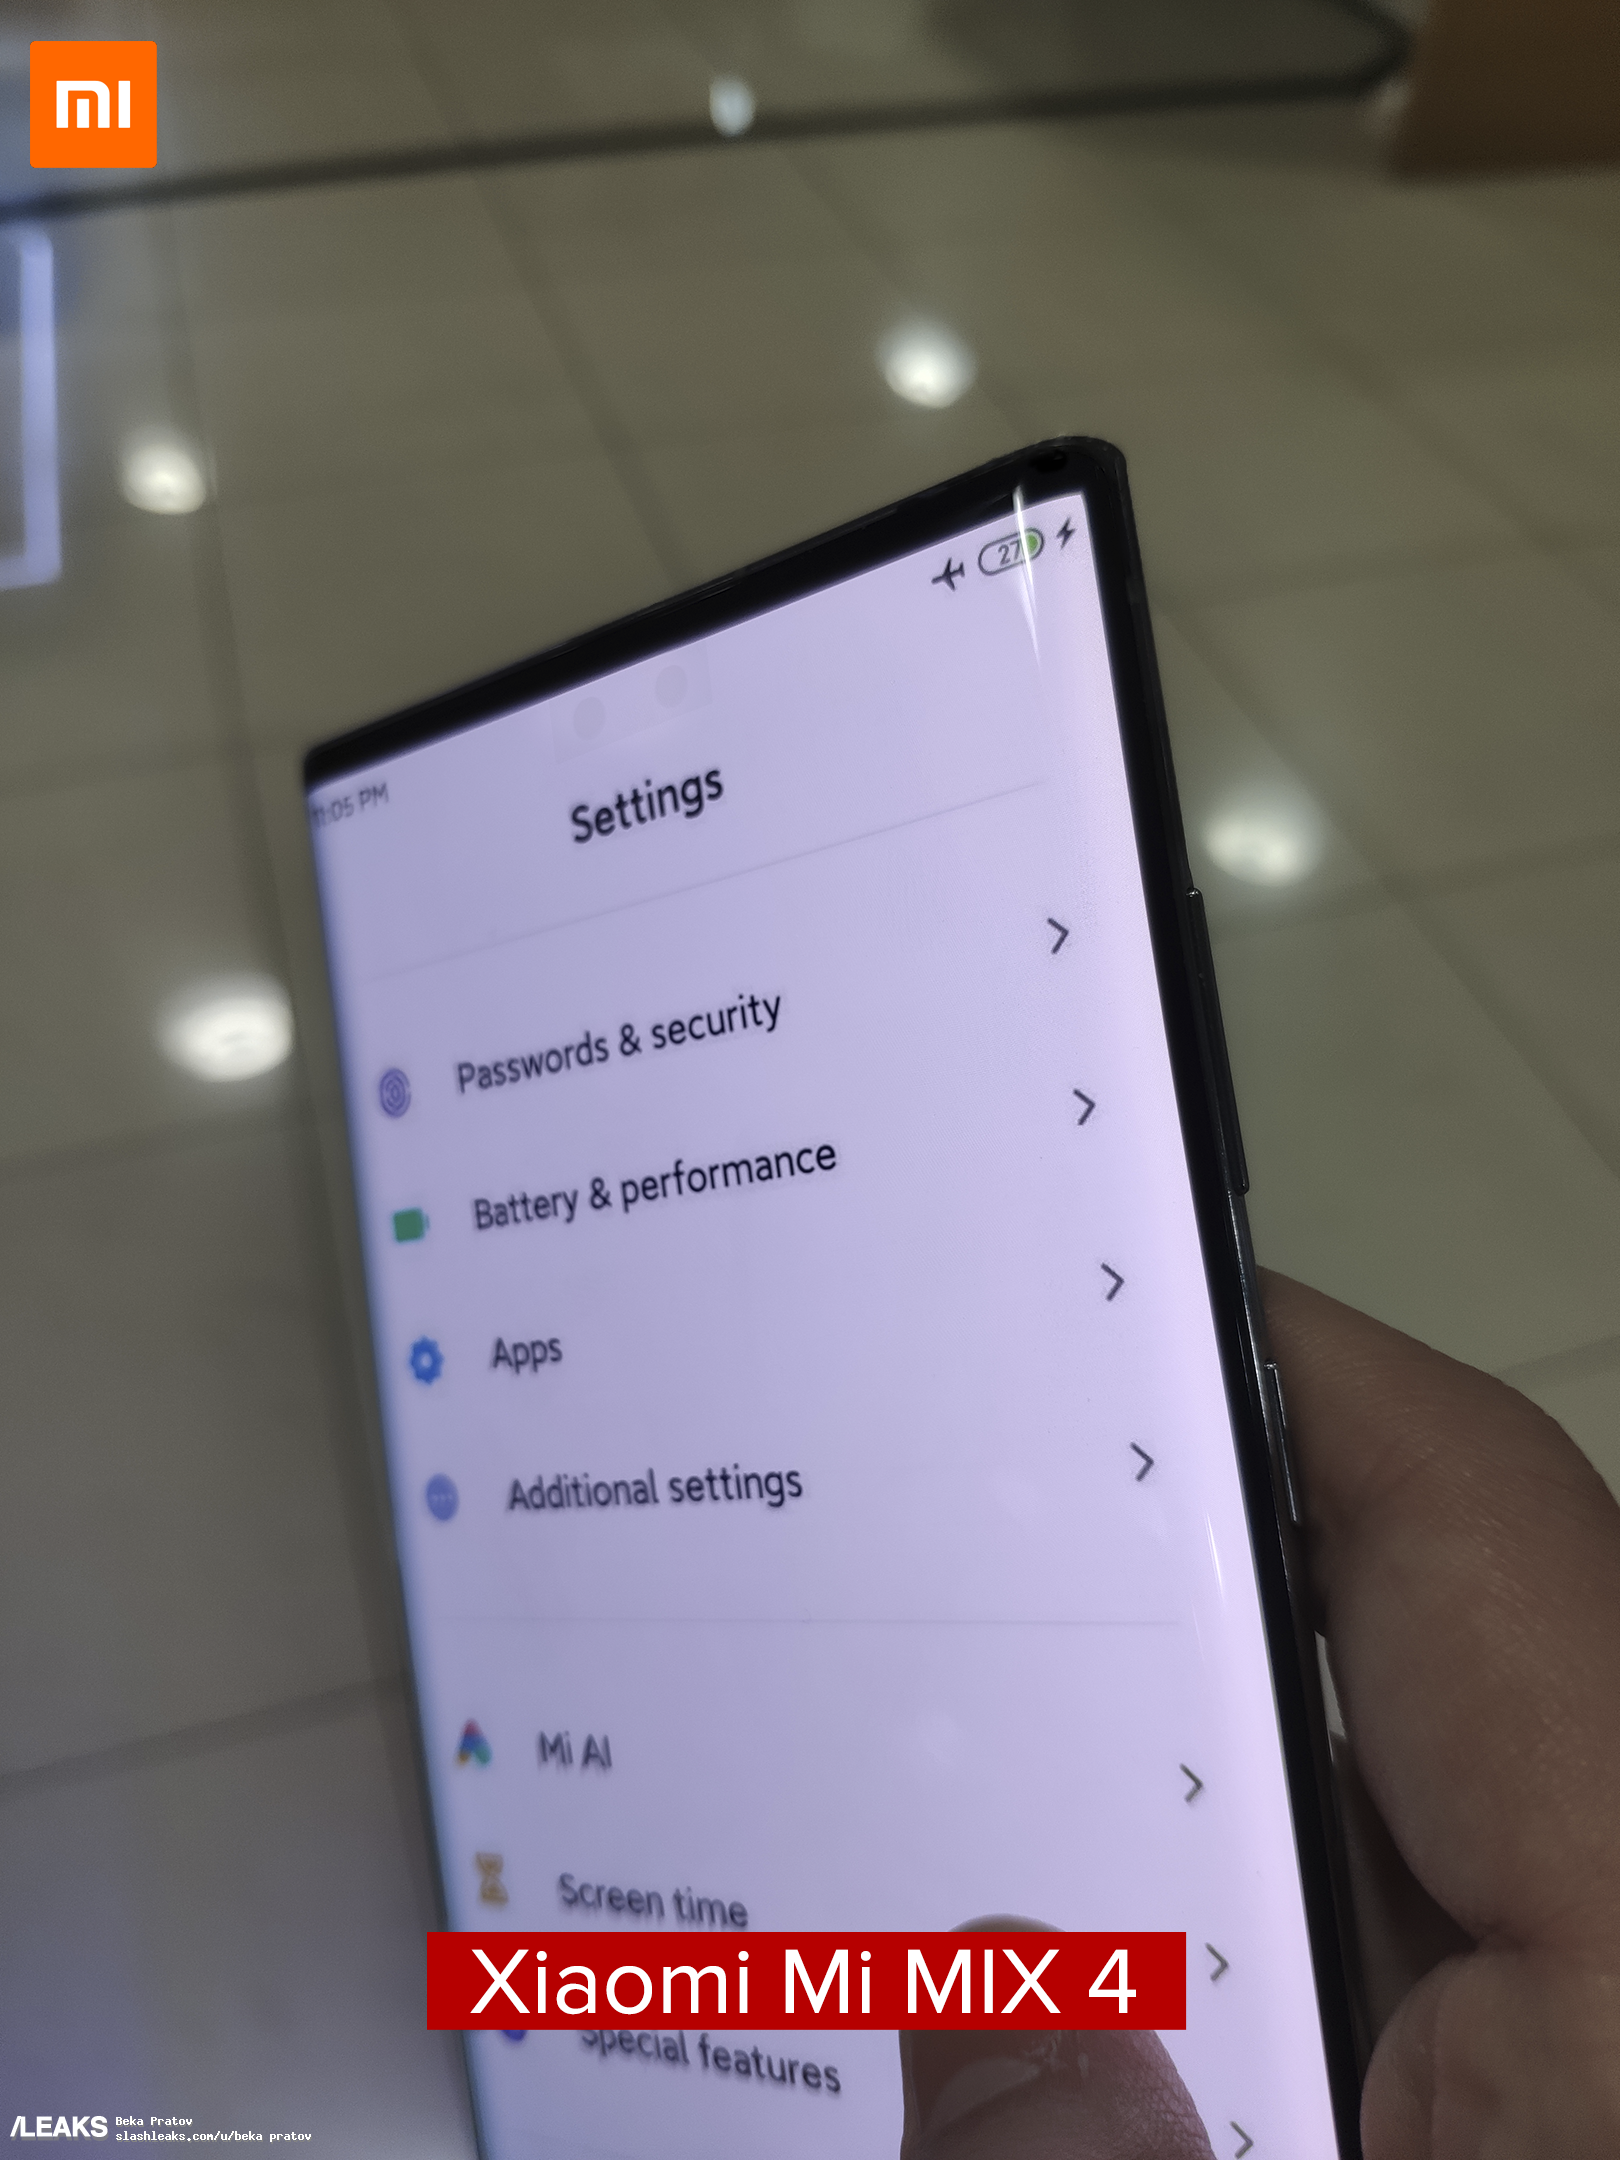 More details about the upcoming Xiaomi Mi MIX 4 leak online 1